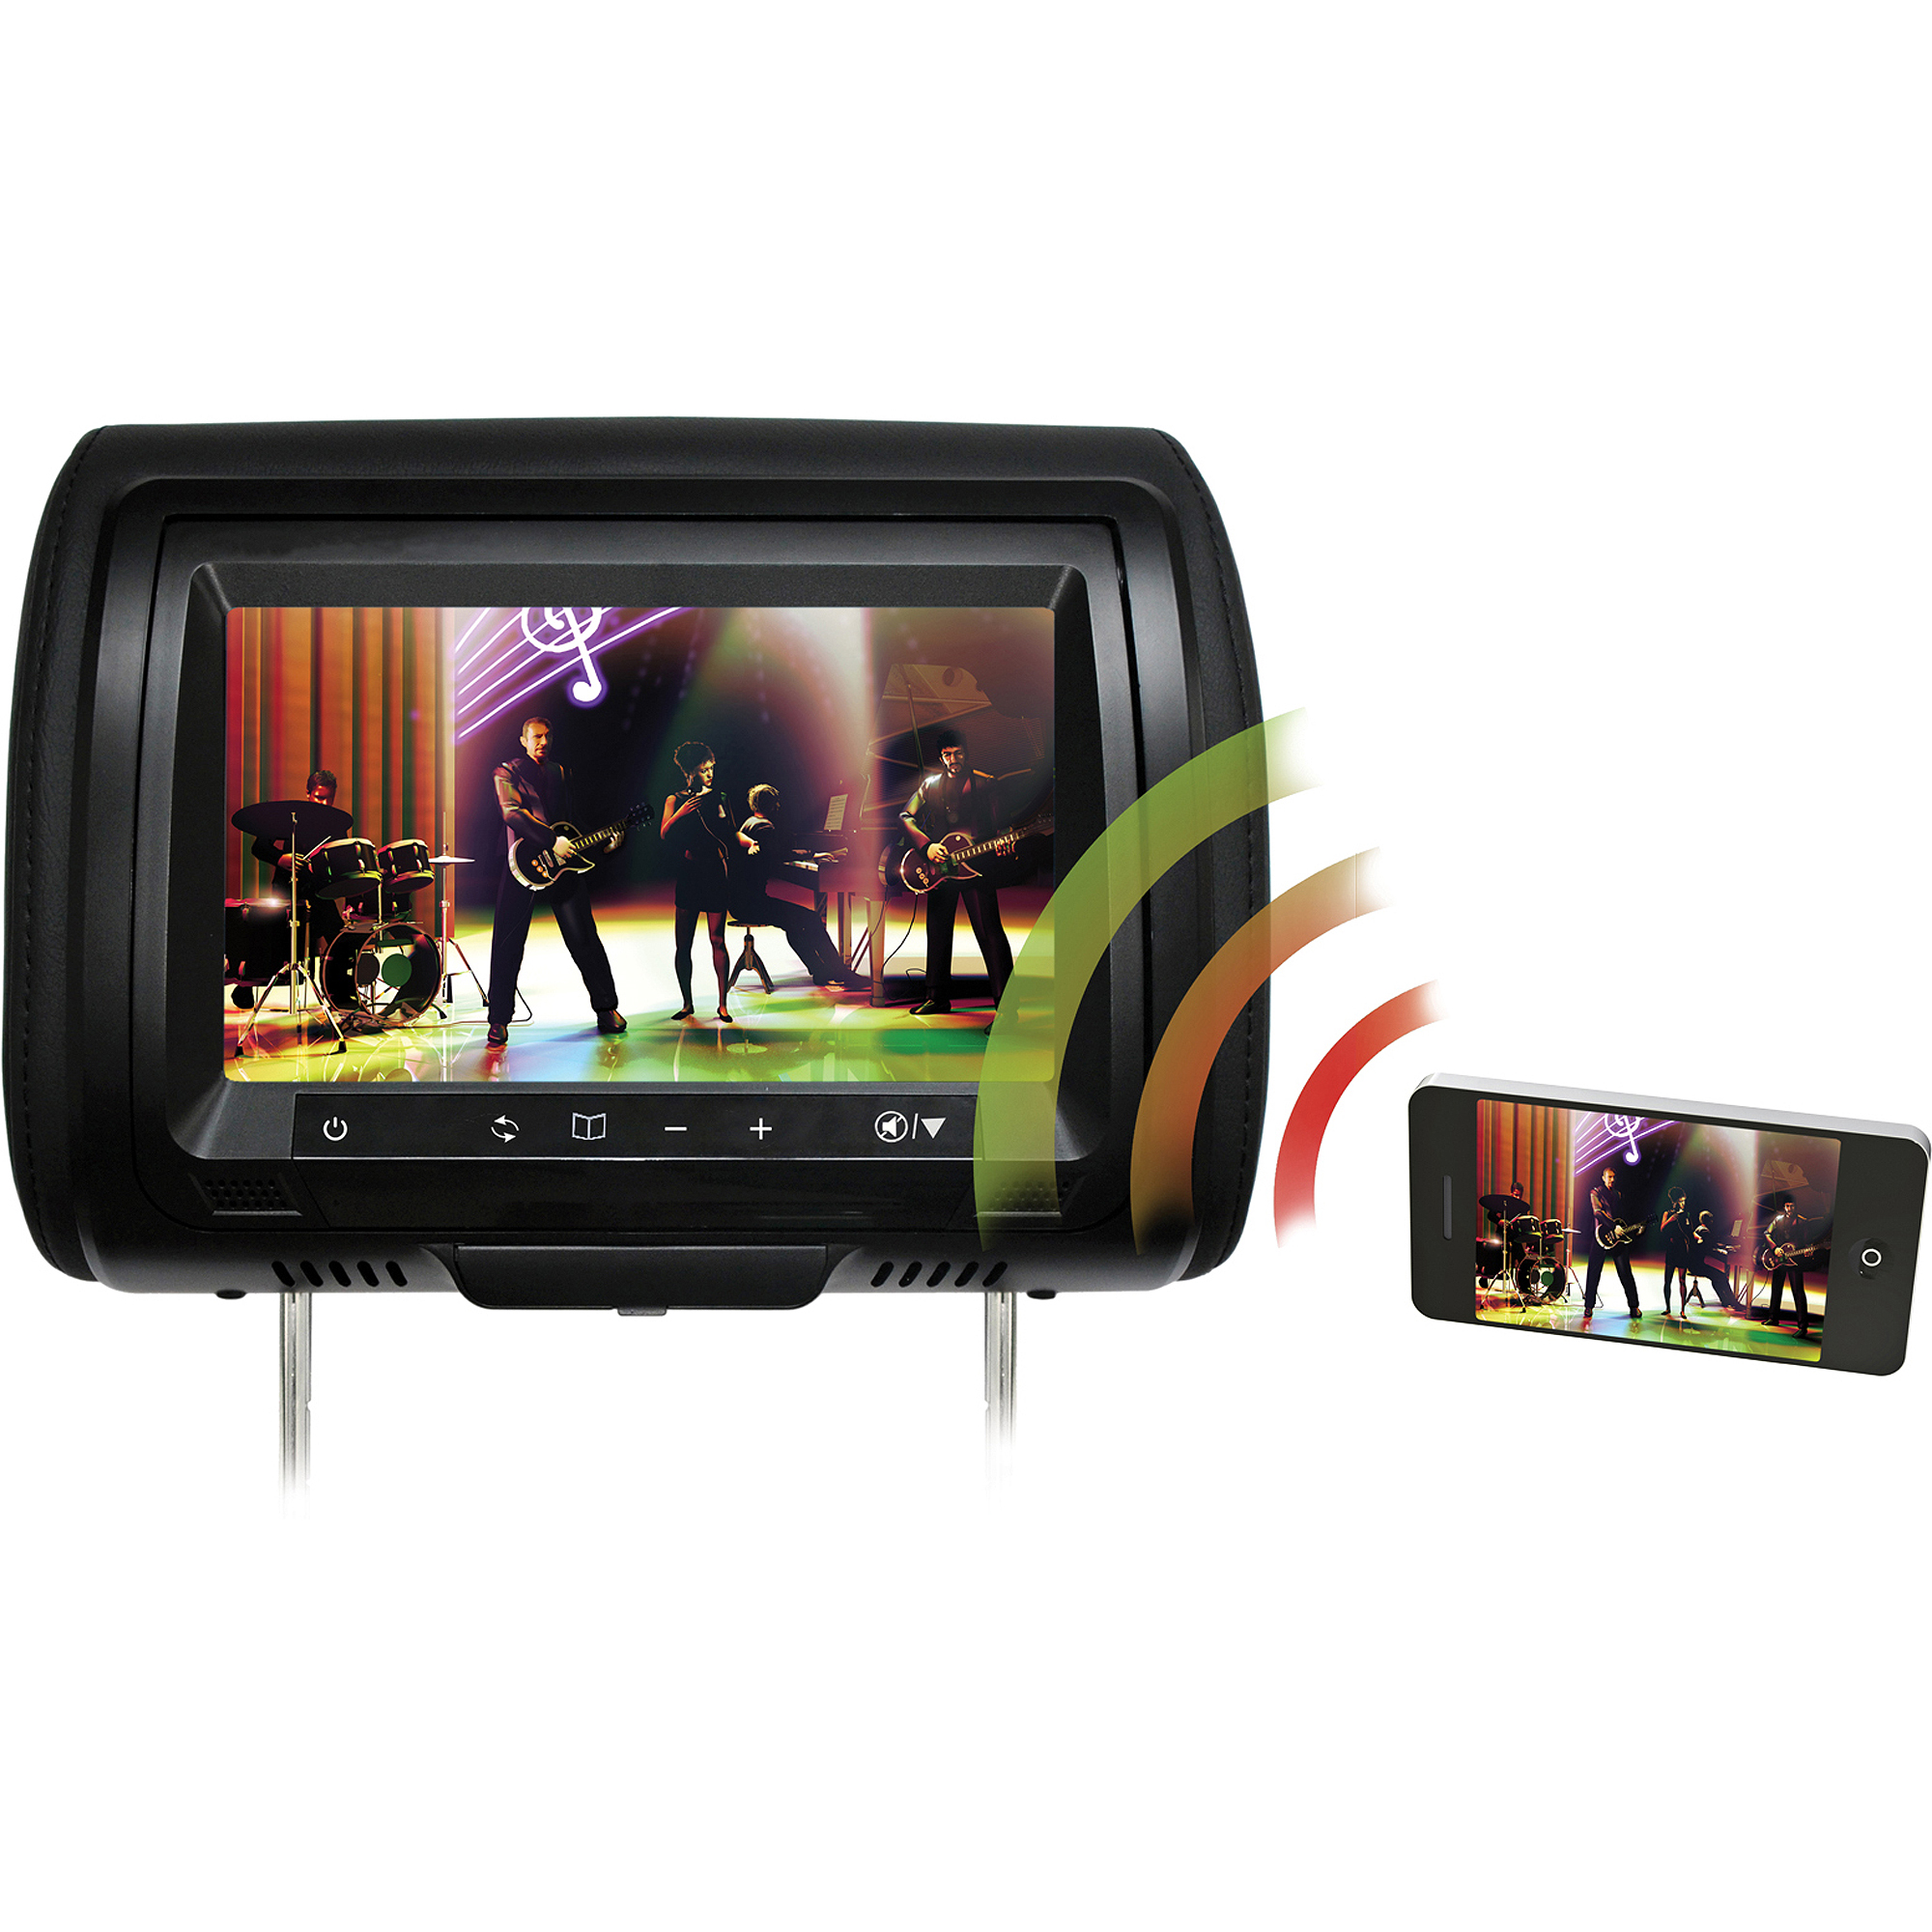 "Concept CLS-903M Chameleon 9"" LCD headrest with Miracast"